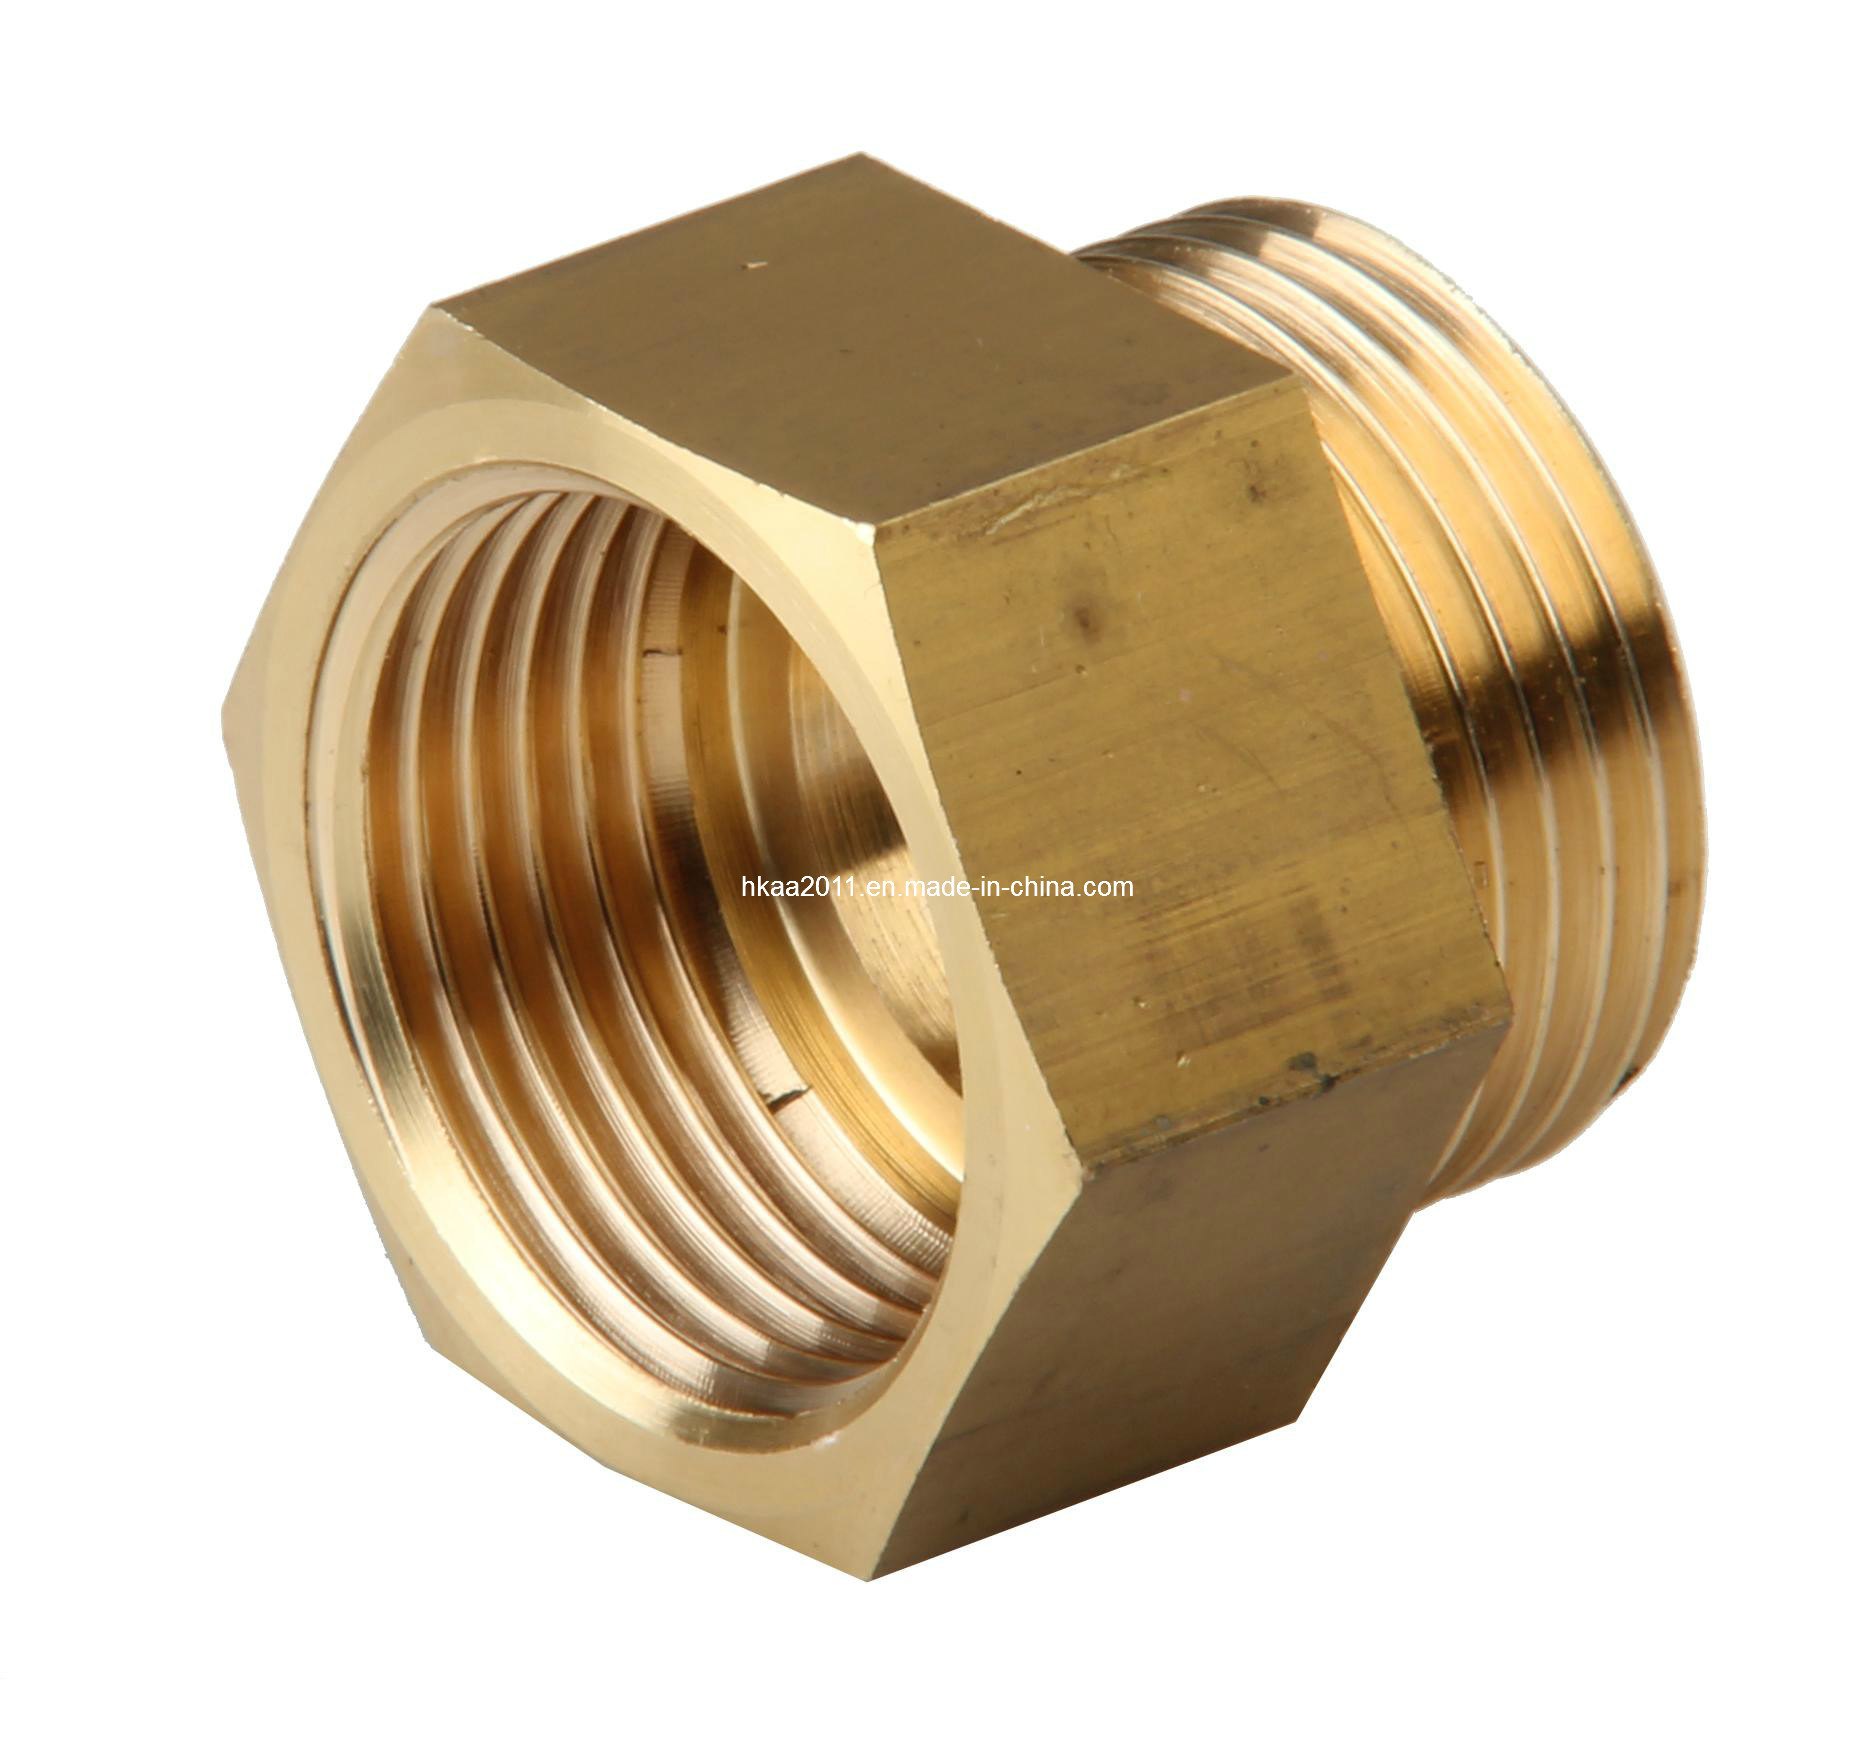 China brass bronze copper hexagonal reducing bushing